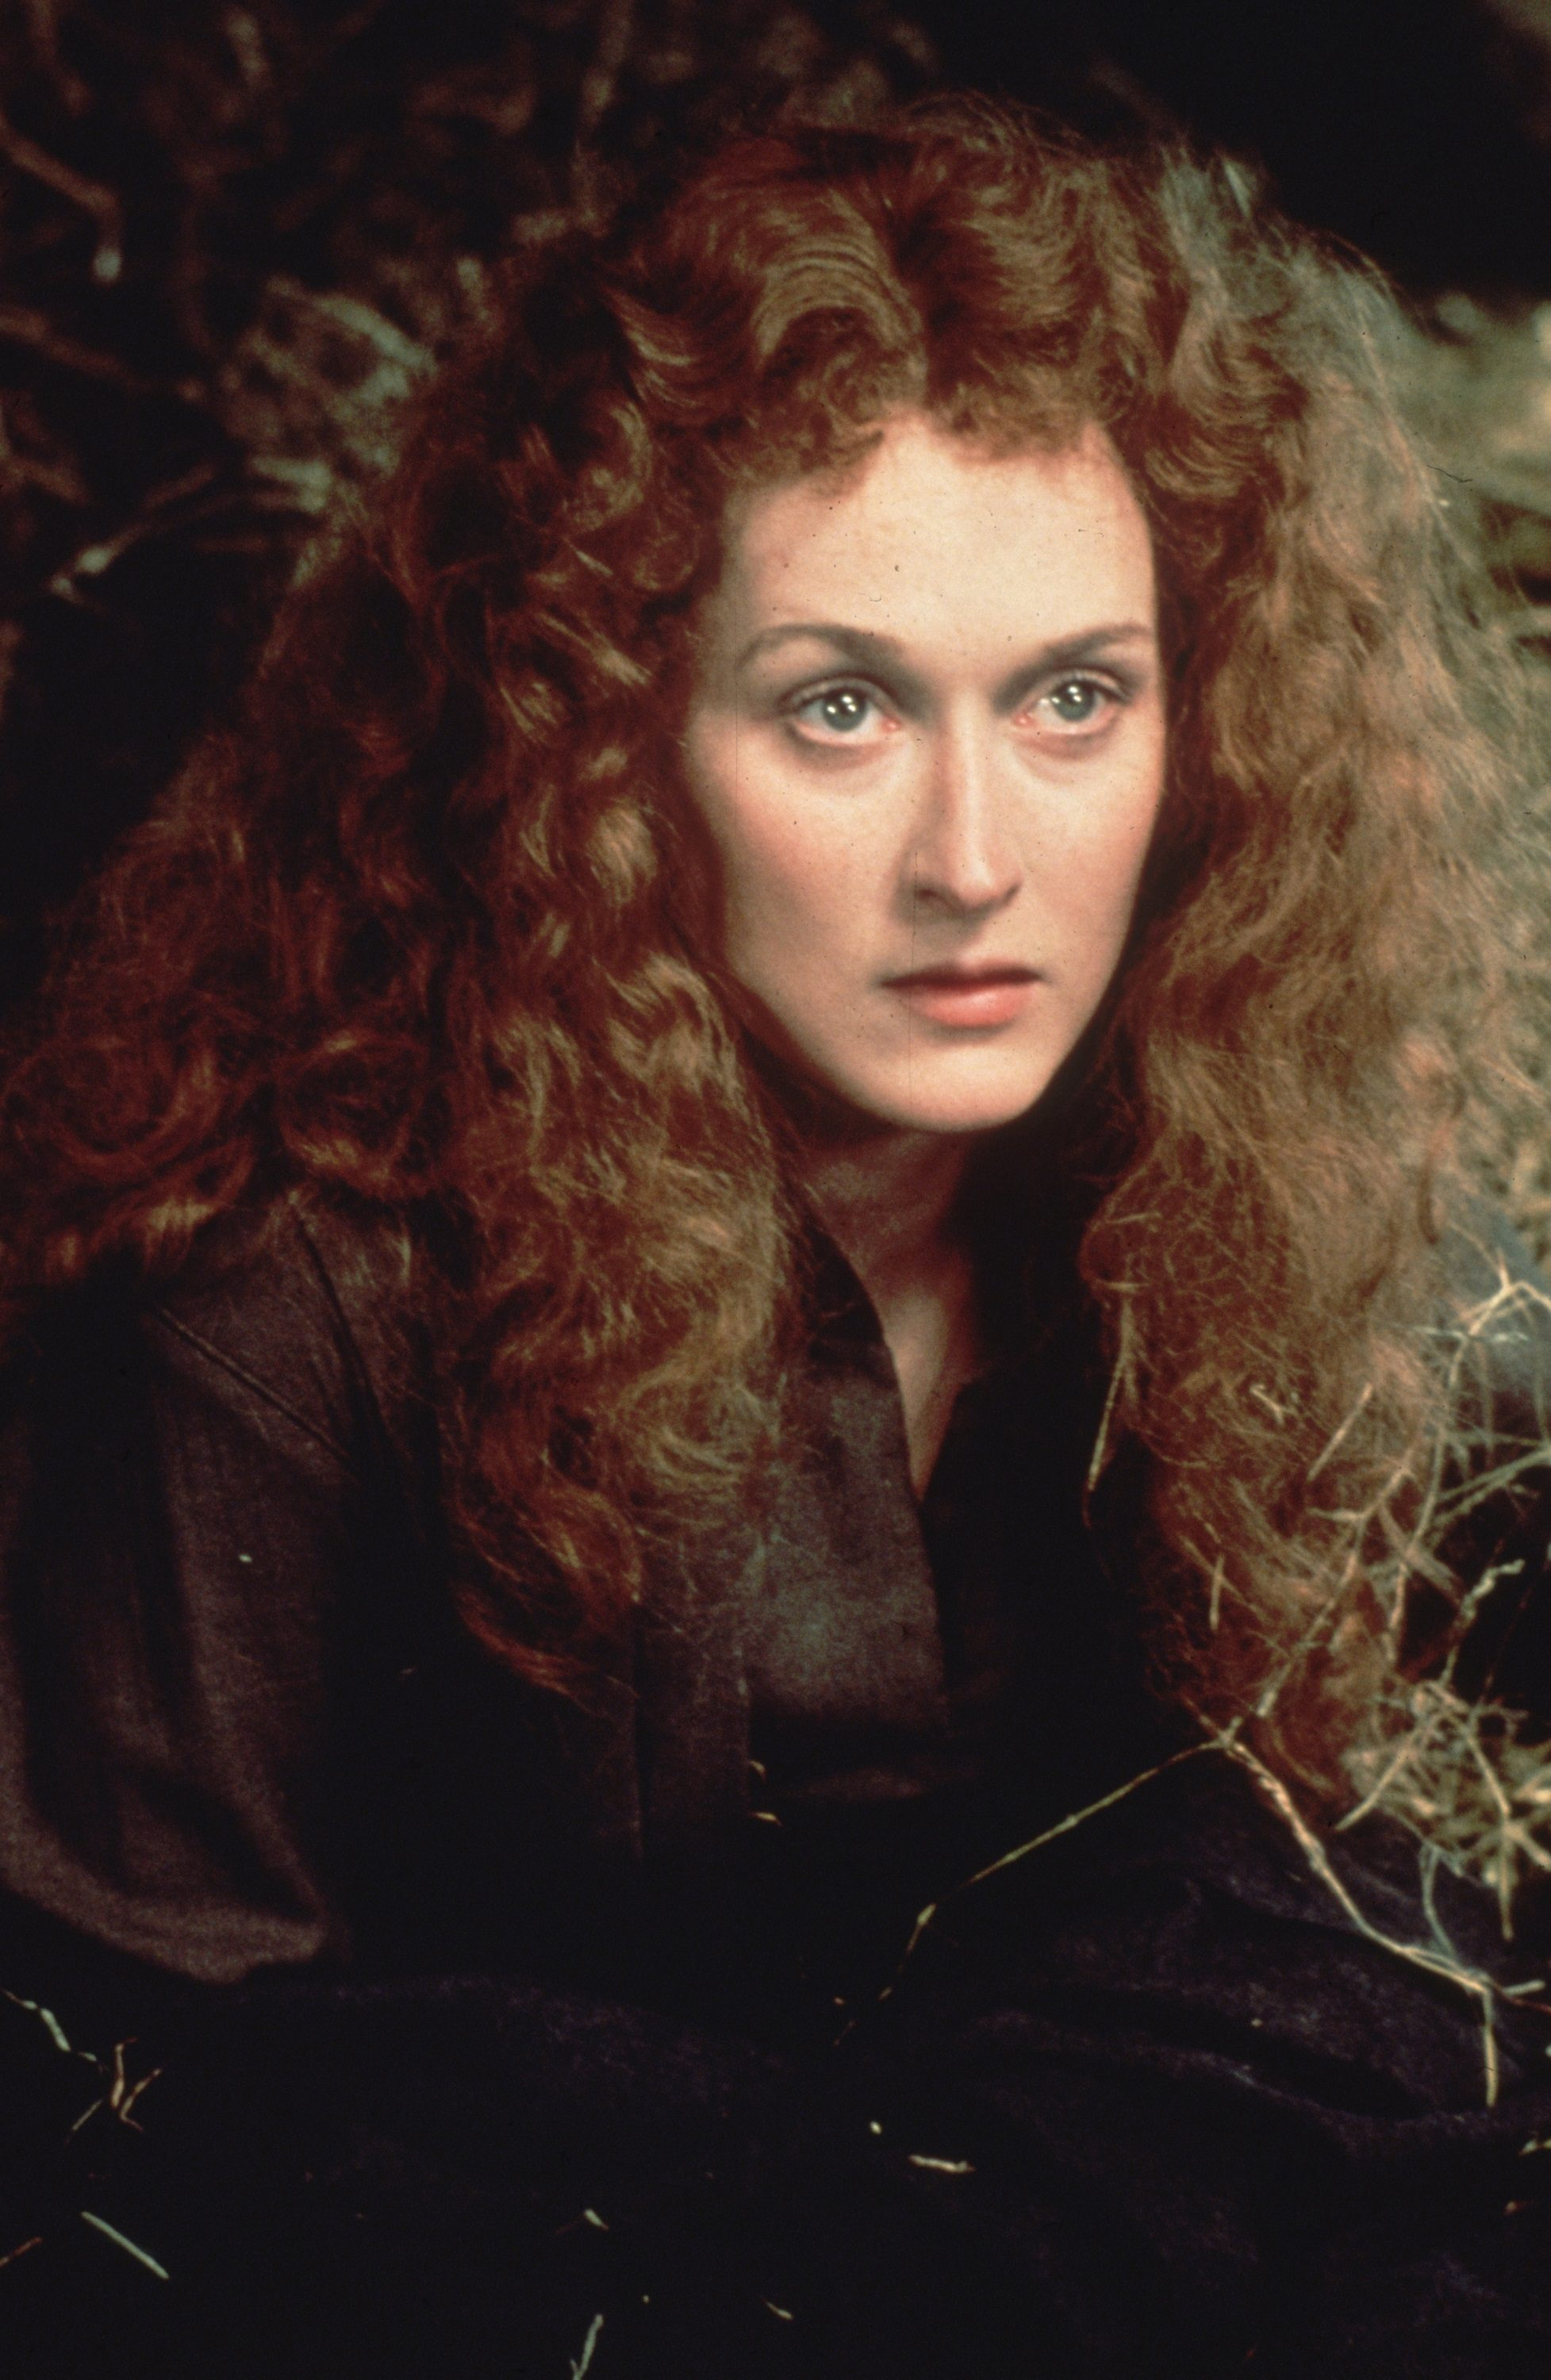 Meryl streep big teased hair